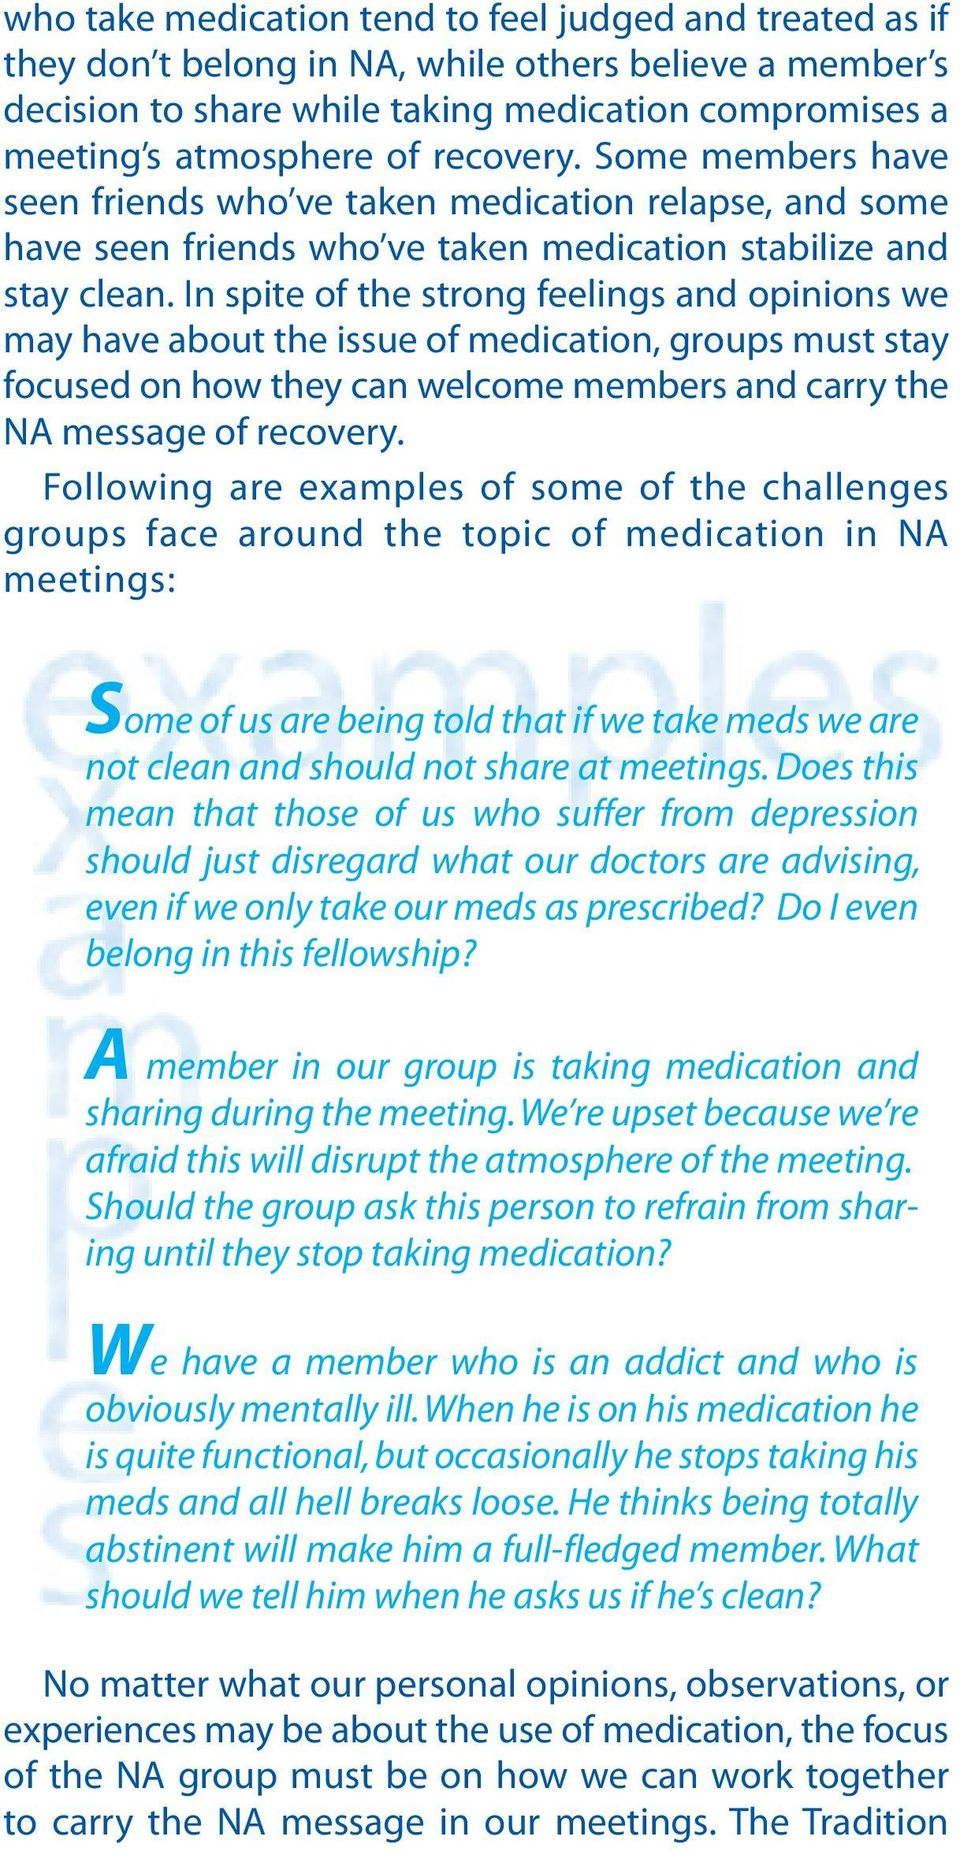 In spite of the strong feelings and opinions we may have about the issue of medication, groups must stay focused on how they can welcome members and carry the NA message of recovery.